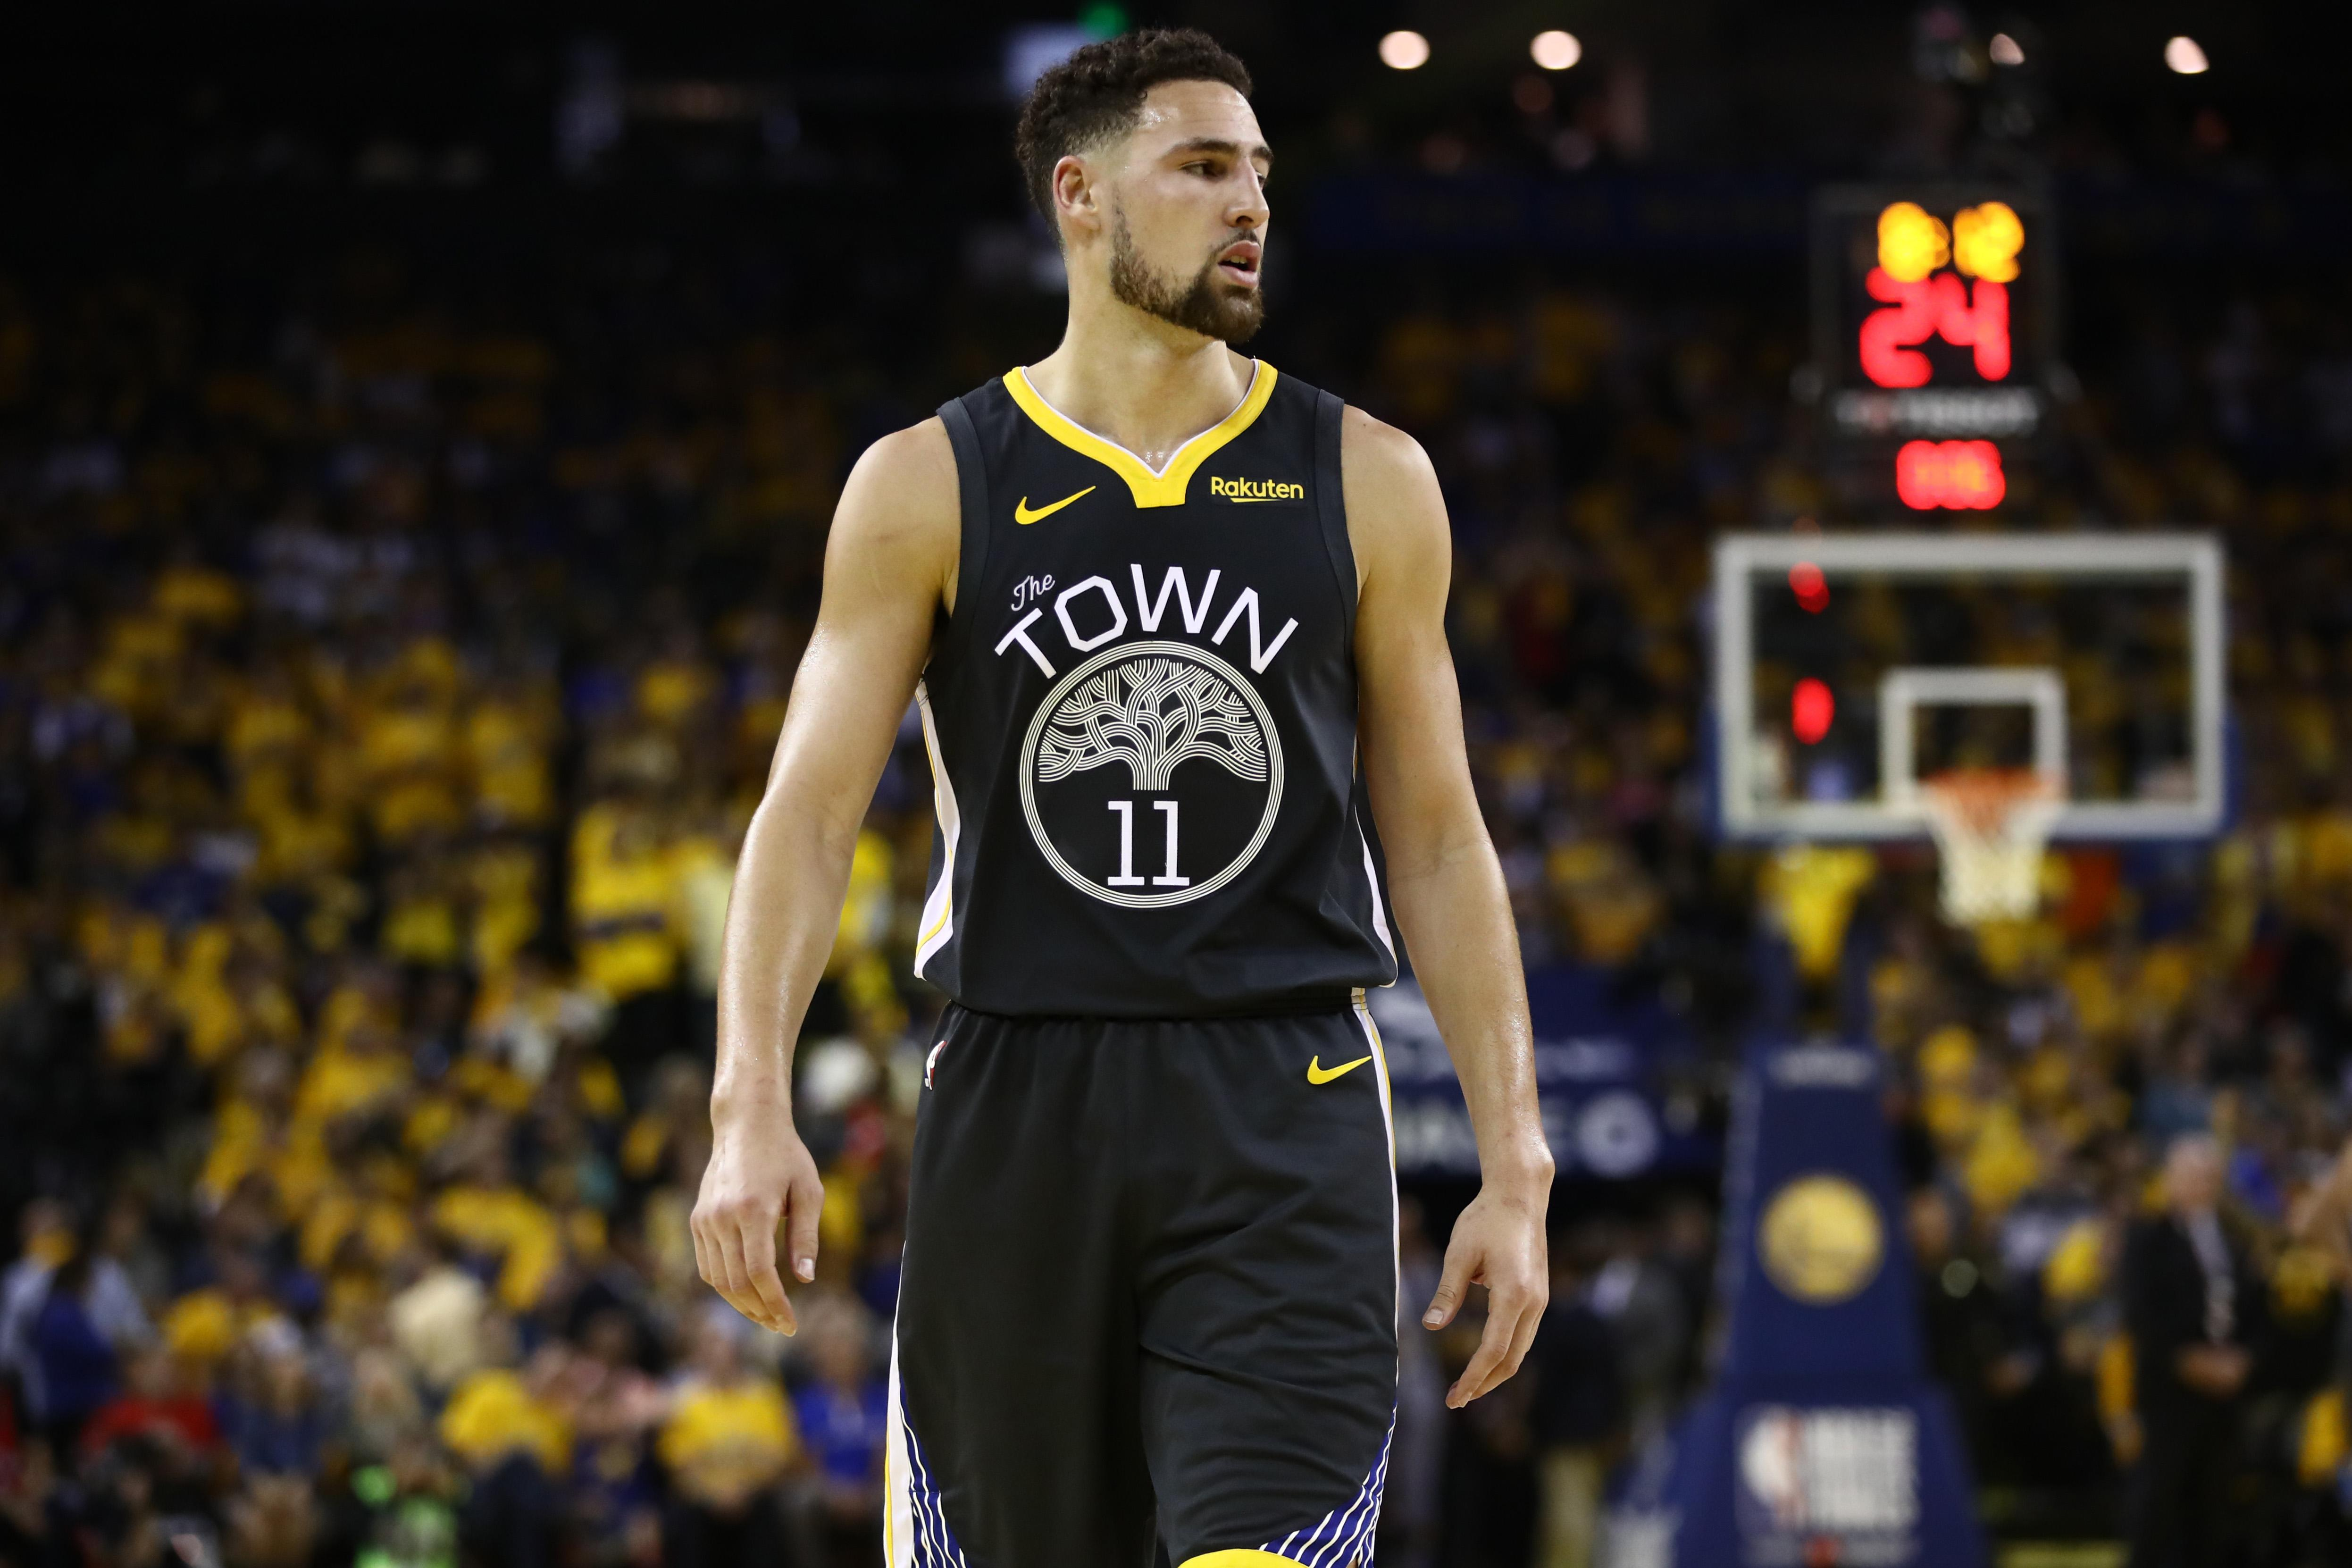 brand new 2b8b3 be94d LeBron gave Klay Thompson and his crutches a hug on 'Space ...